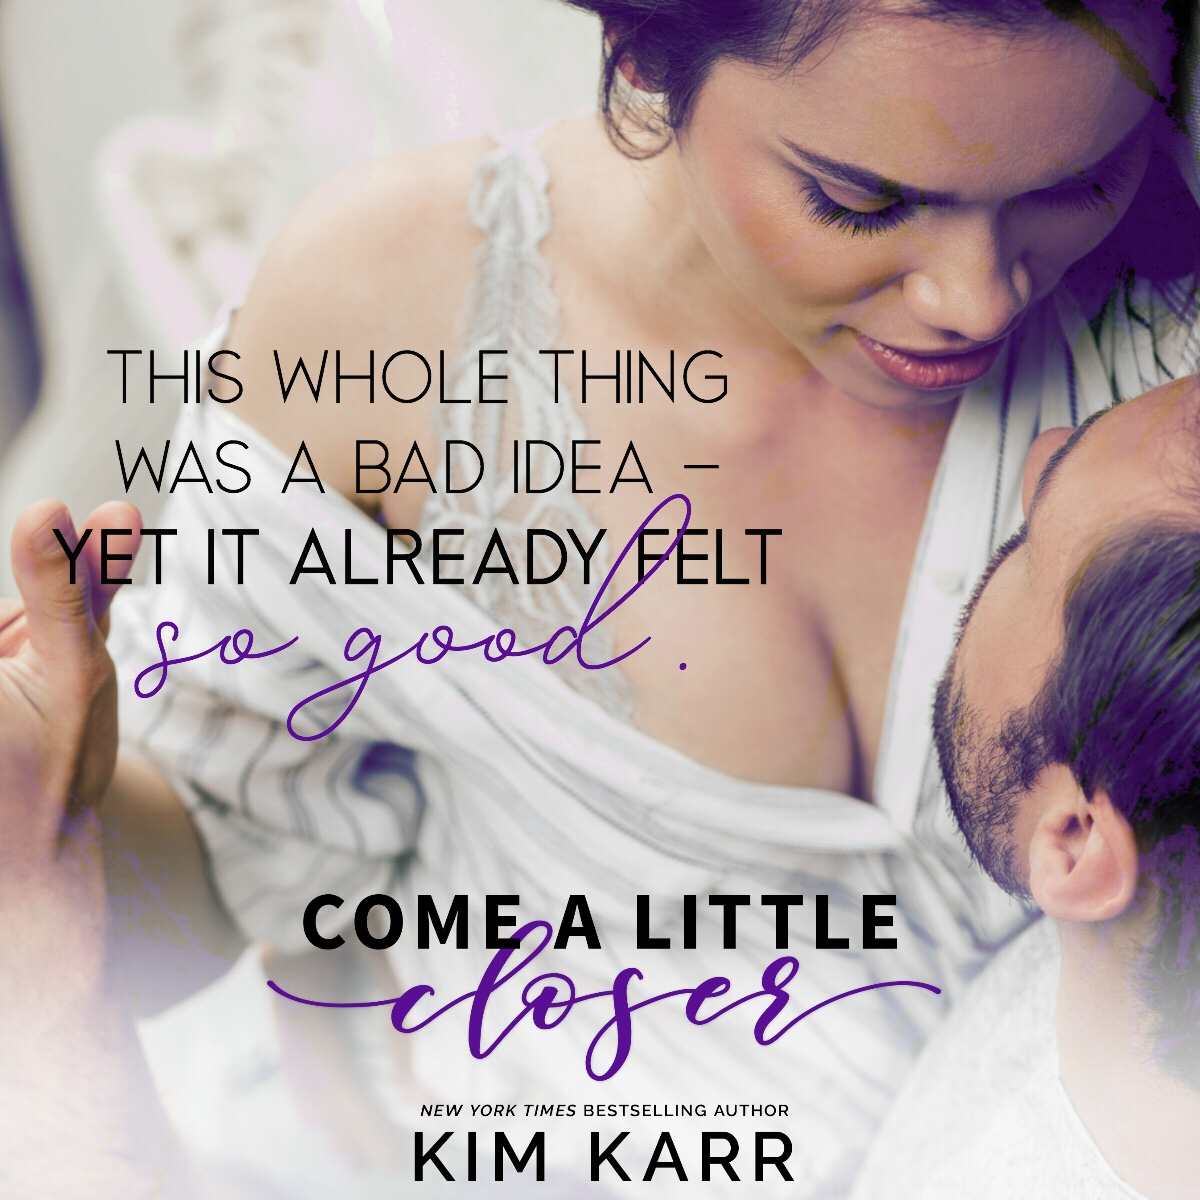 COME A LITTLE CLOSER by Kim Karrr